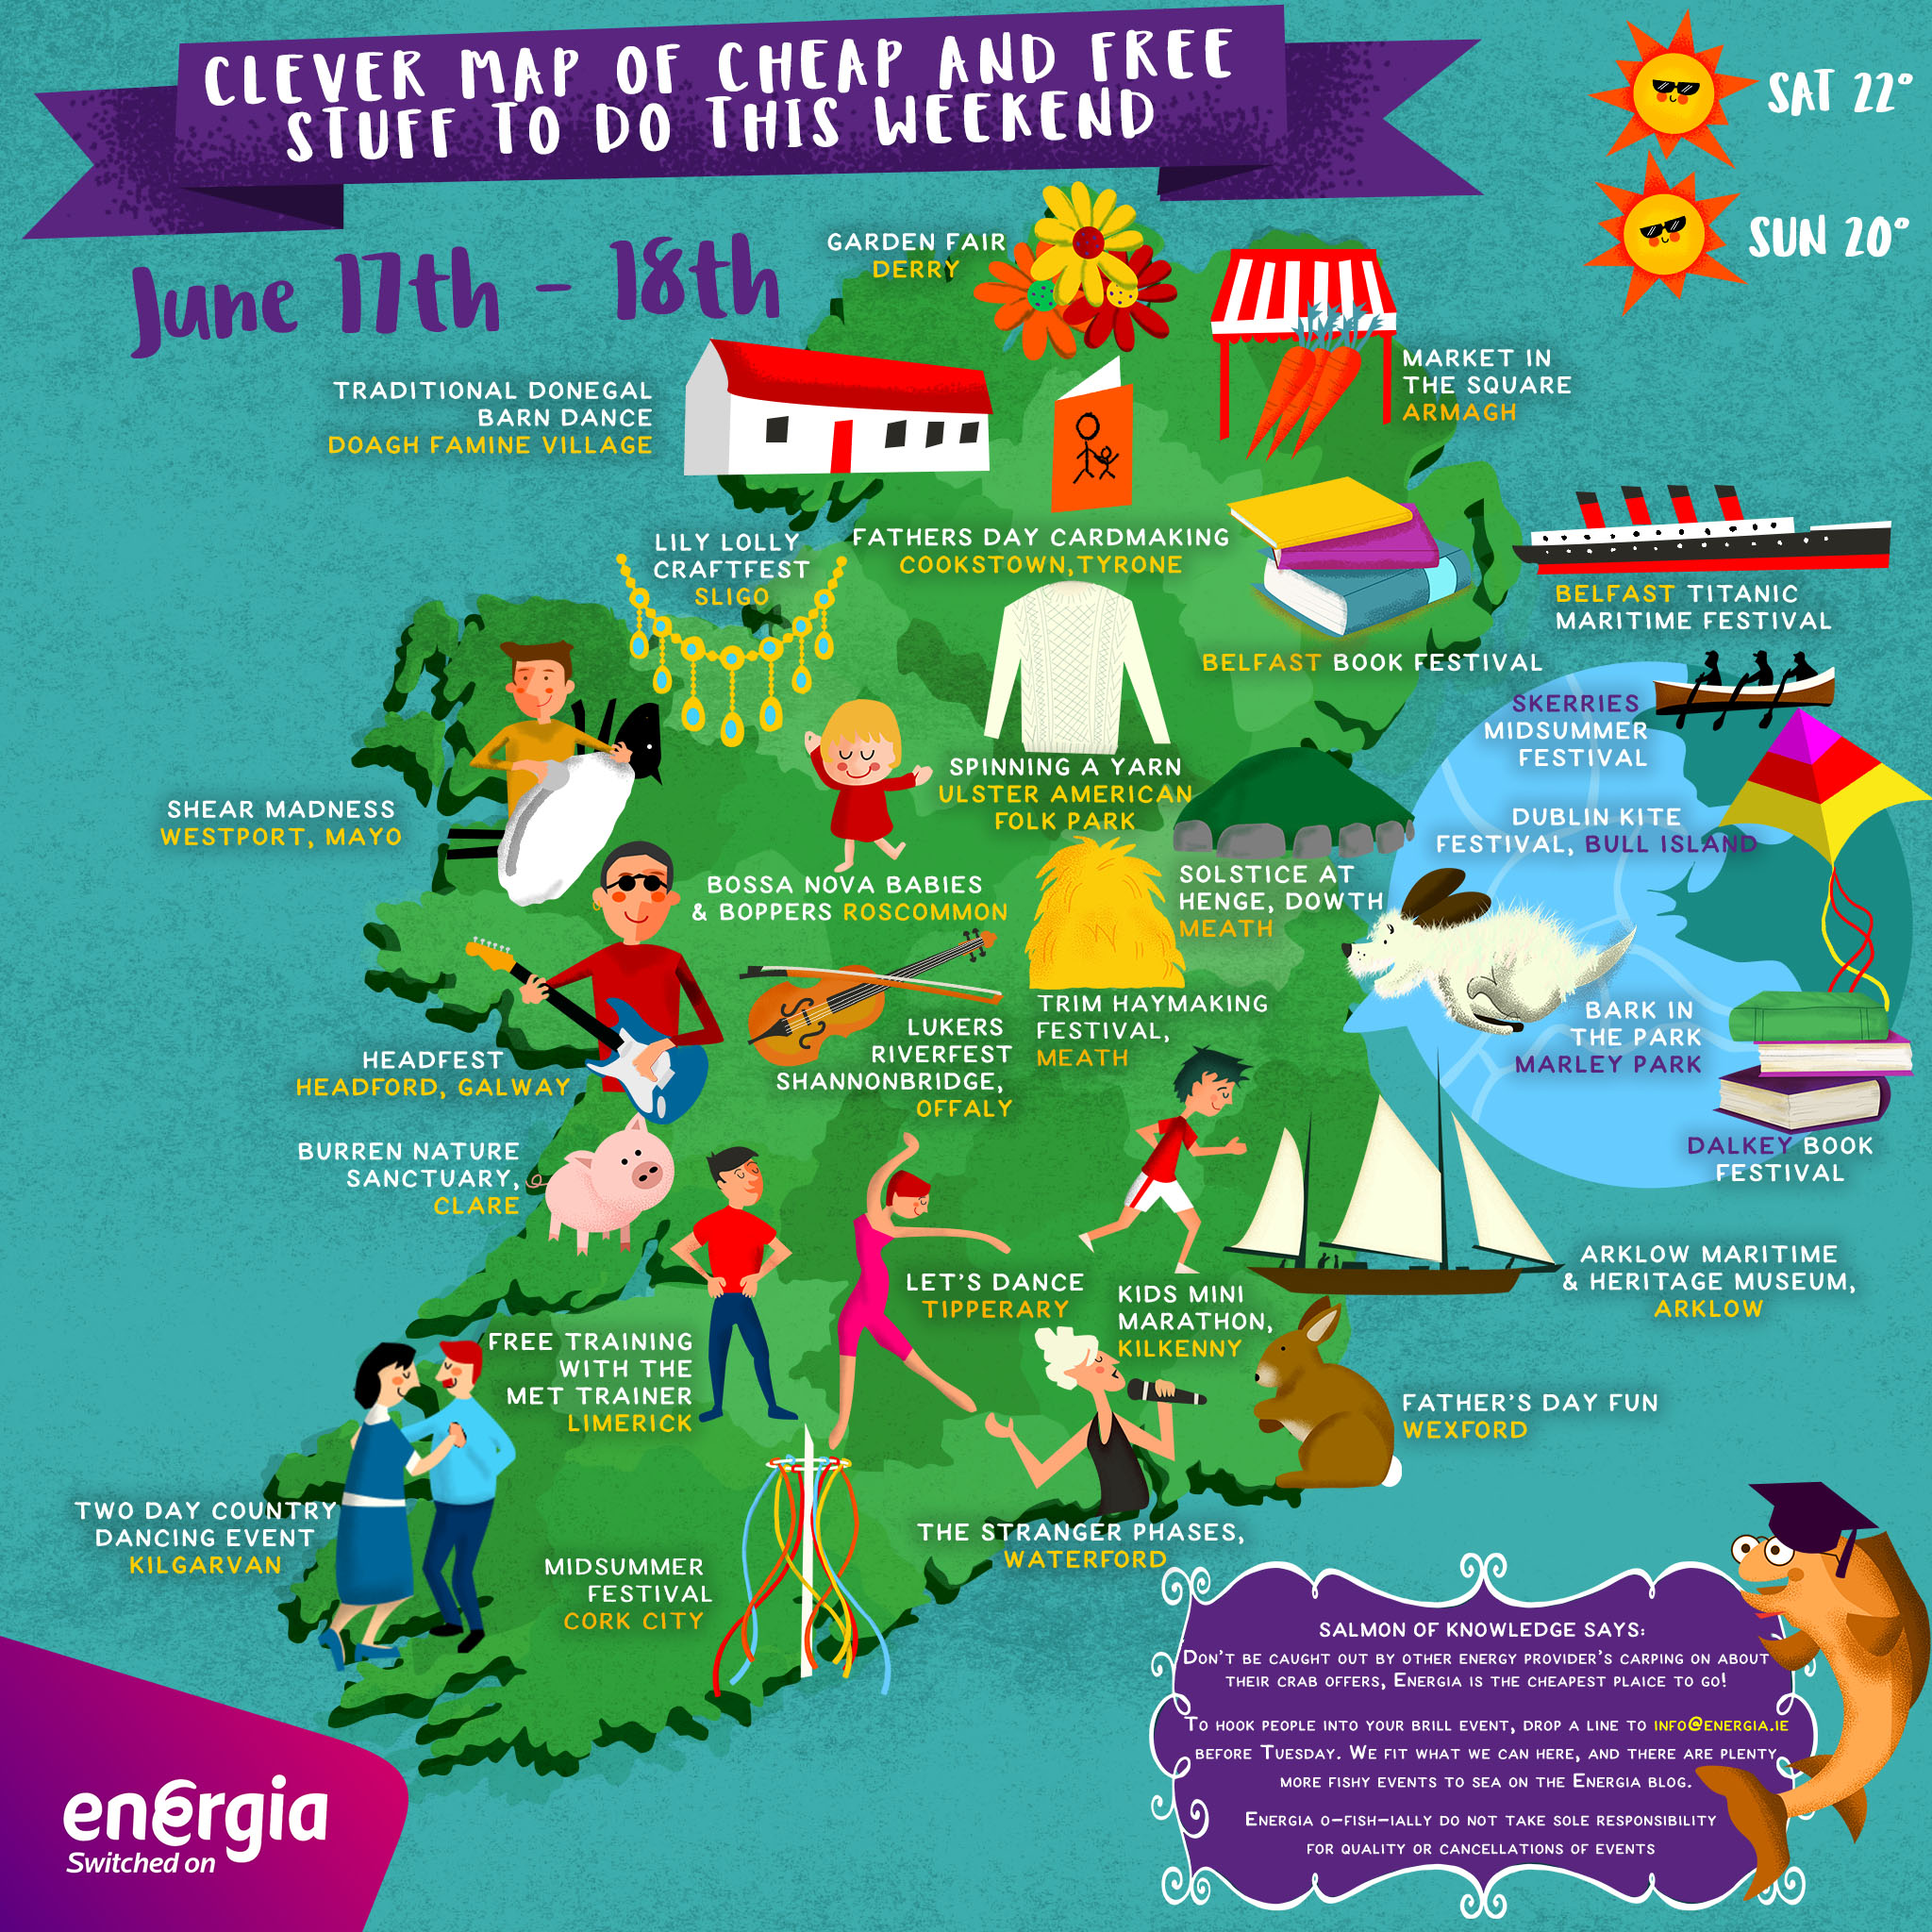 Map Of The Burren Ireland.Clever Map Of Cheap Free Stuff To Do This Weekend 17th 18th June